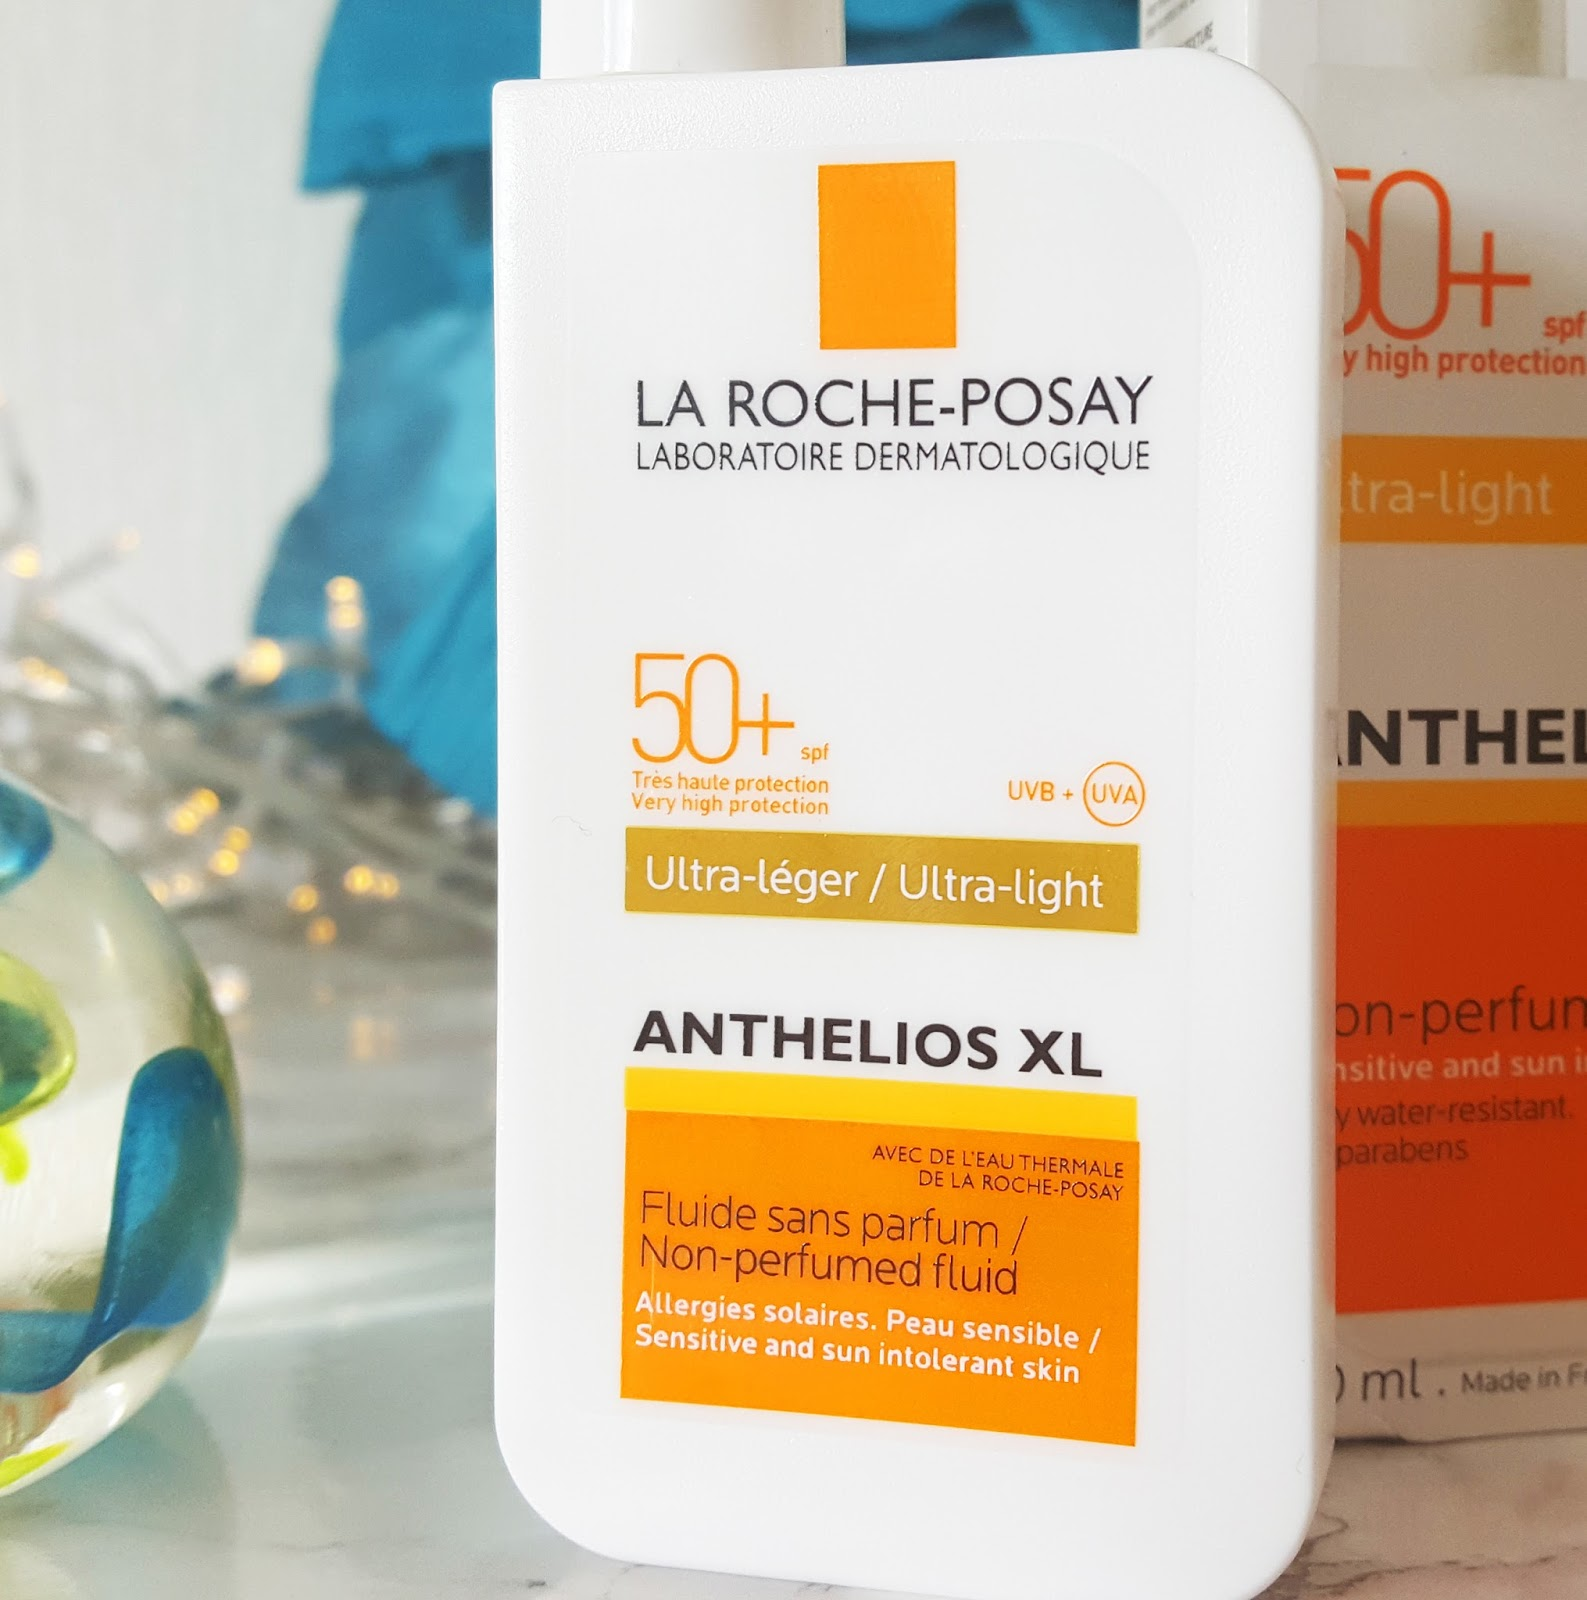 Does what it says on the bottle: La Roche-Posay's Anthelios SP50